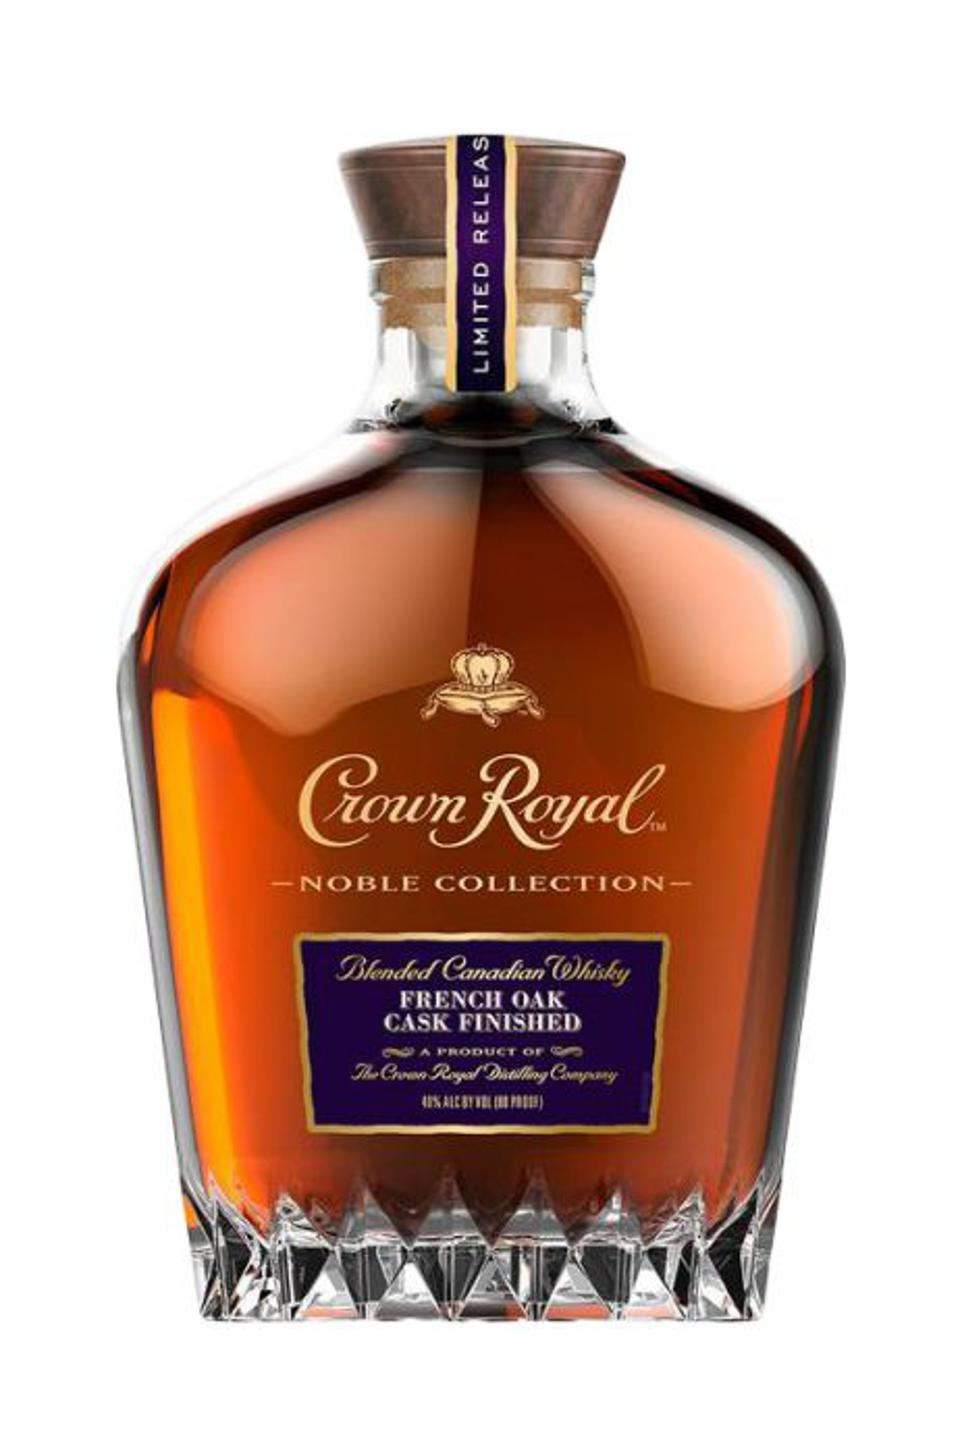 Crown Royal, The Noble Collection, French Oak Cask Finished